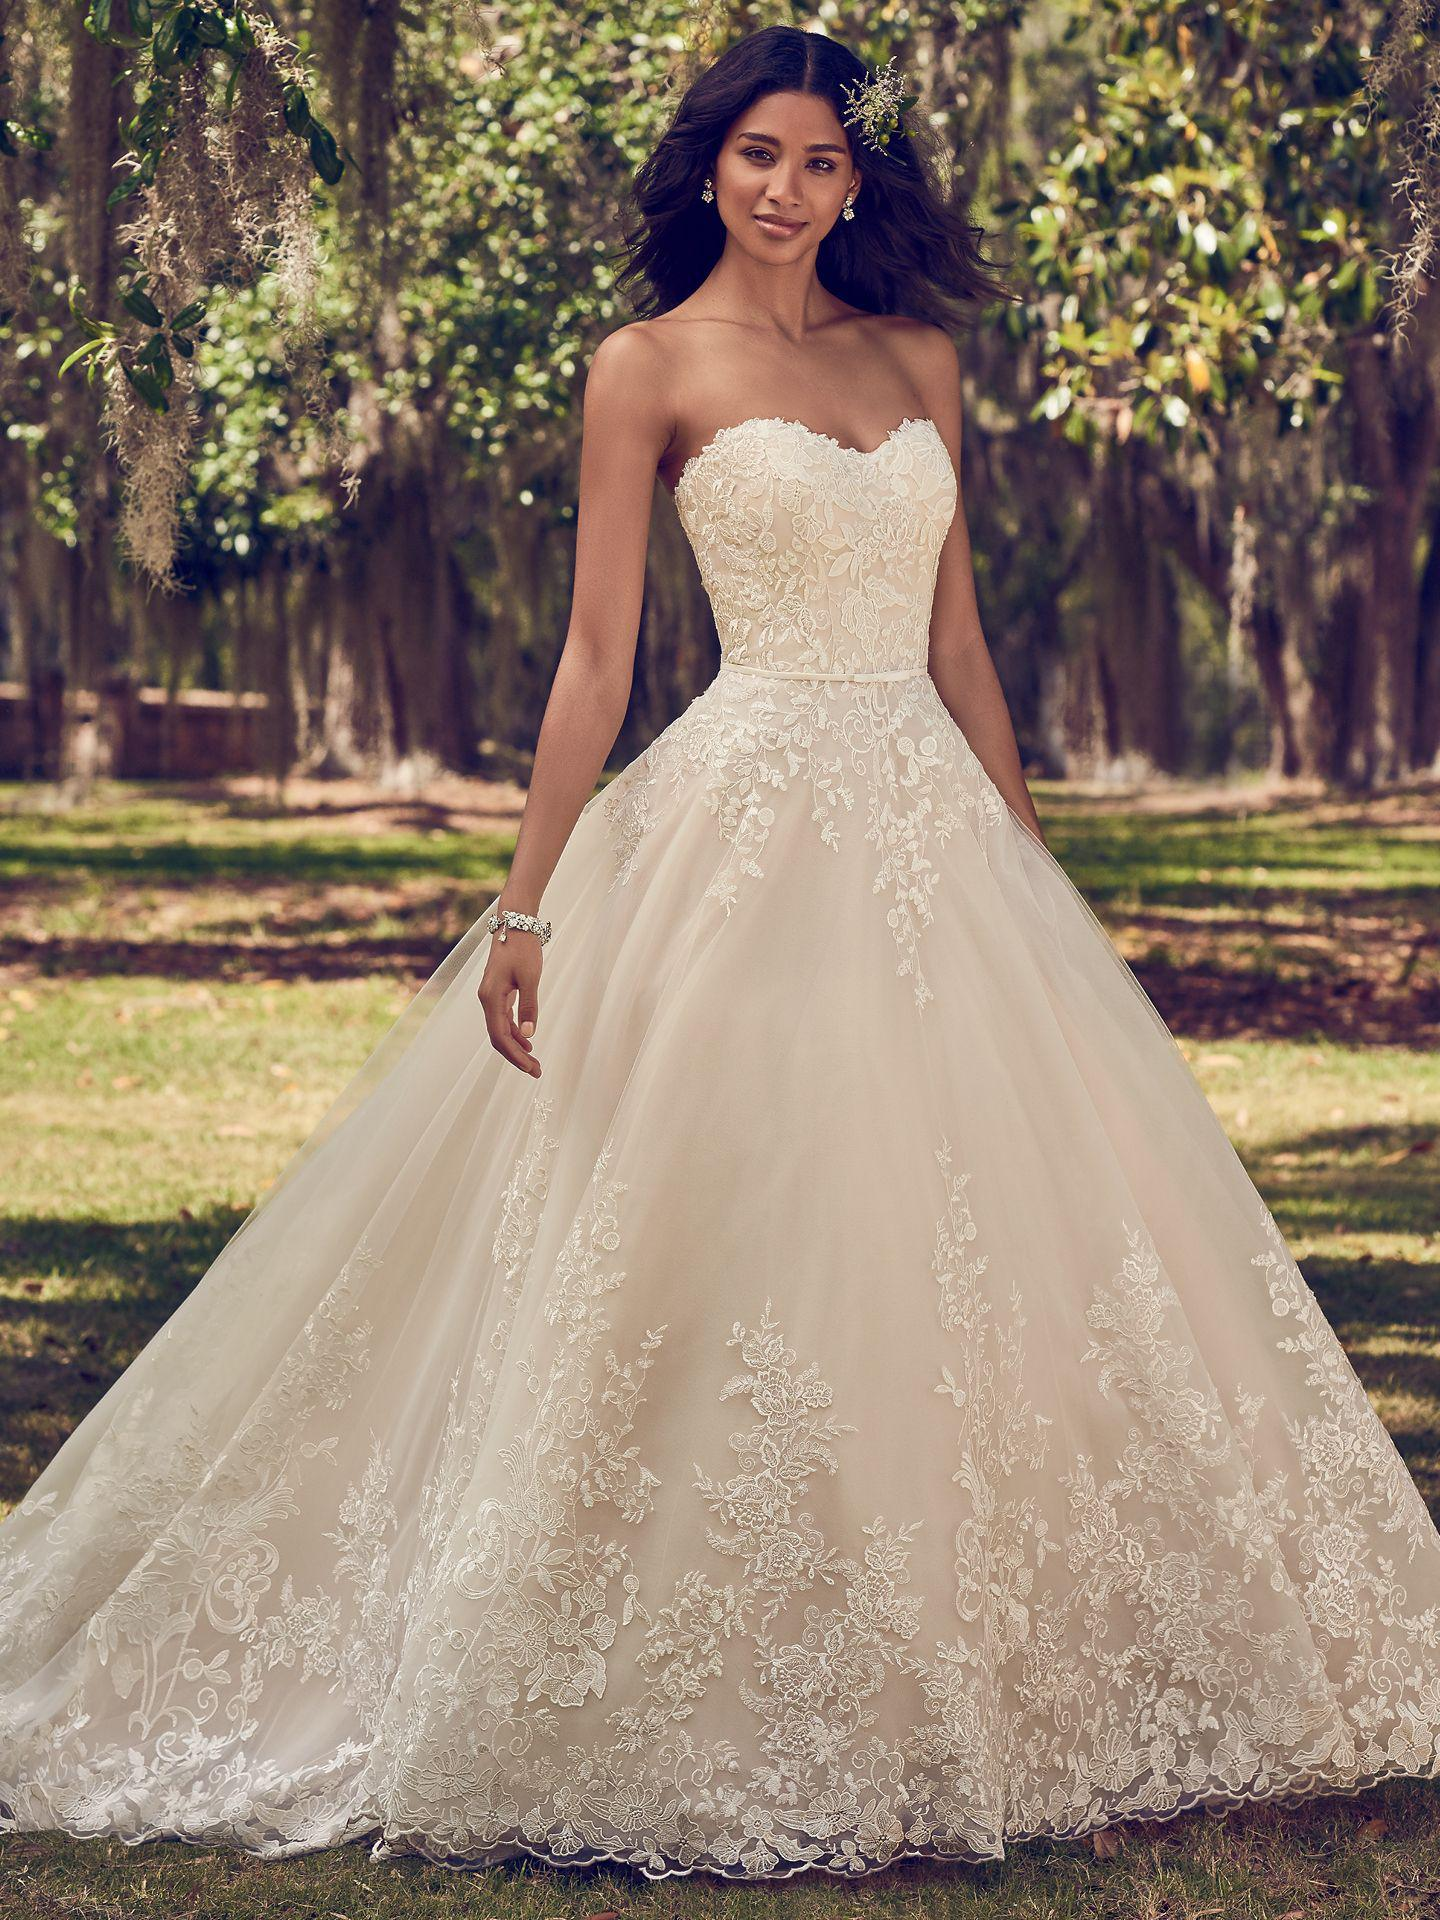 2020/19 Maggie Sottero - VIOLA, All Ivory, PlusSize:44